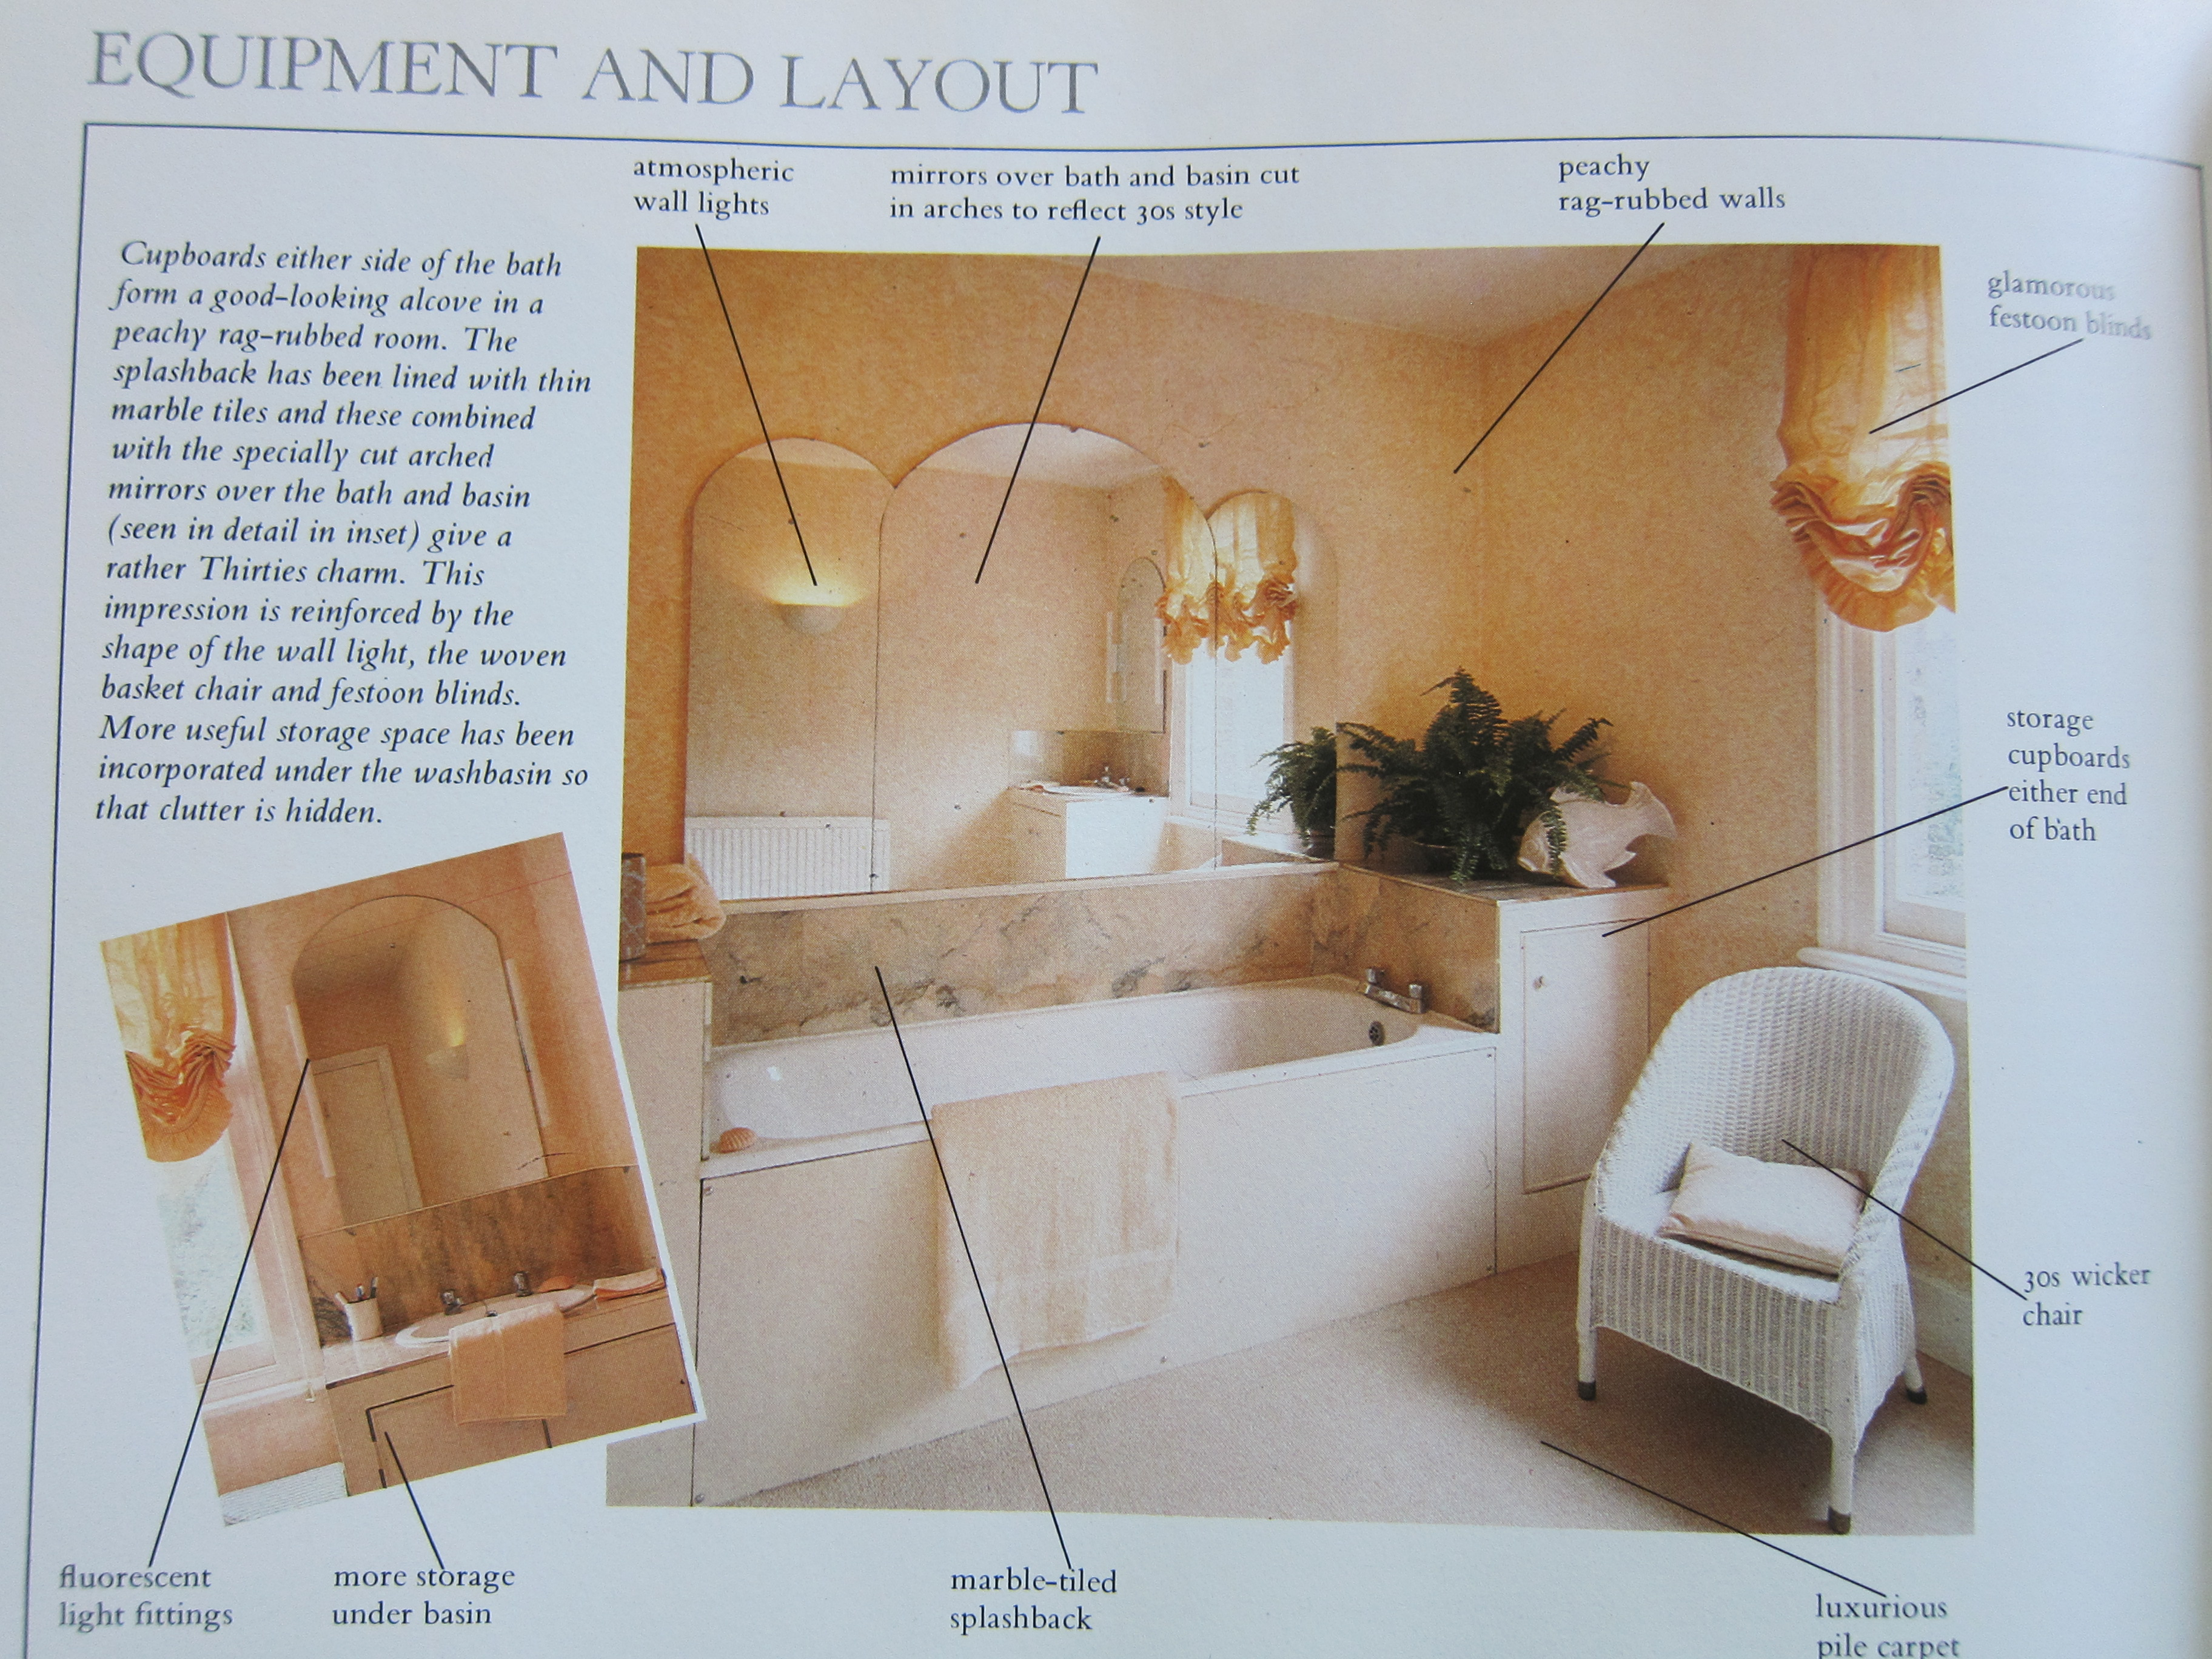 1930s Inspired Bathroom from the 1980s